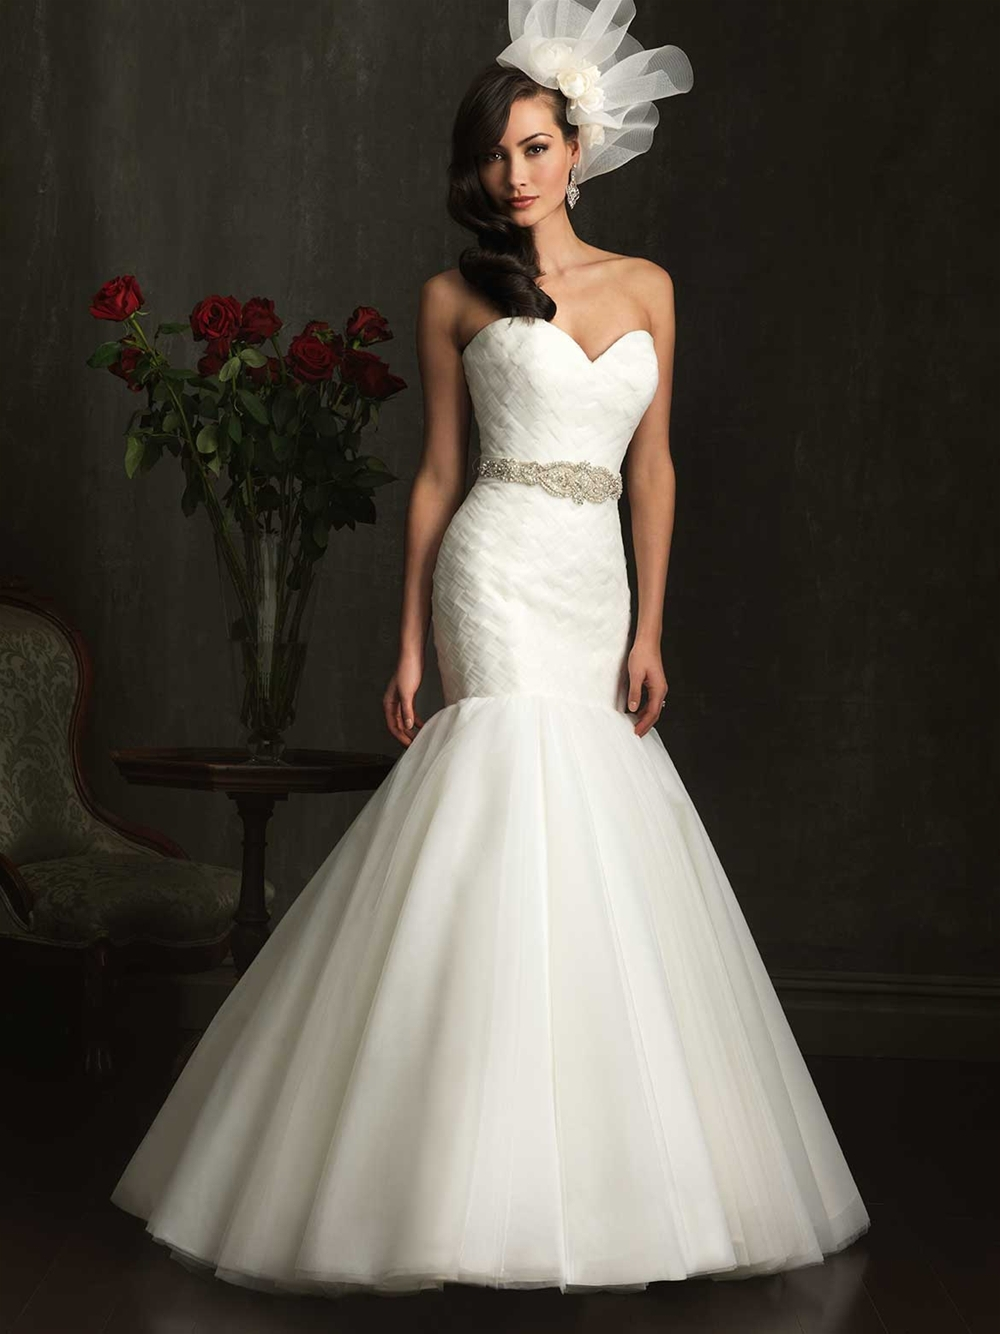 Amazing Mermaid Wedding Dresses Silk | Dress images